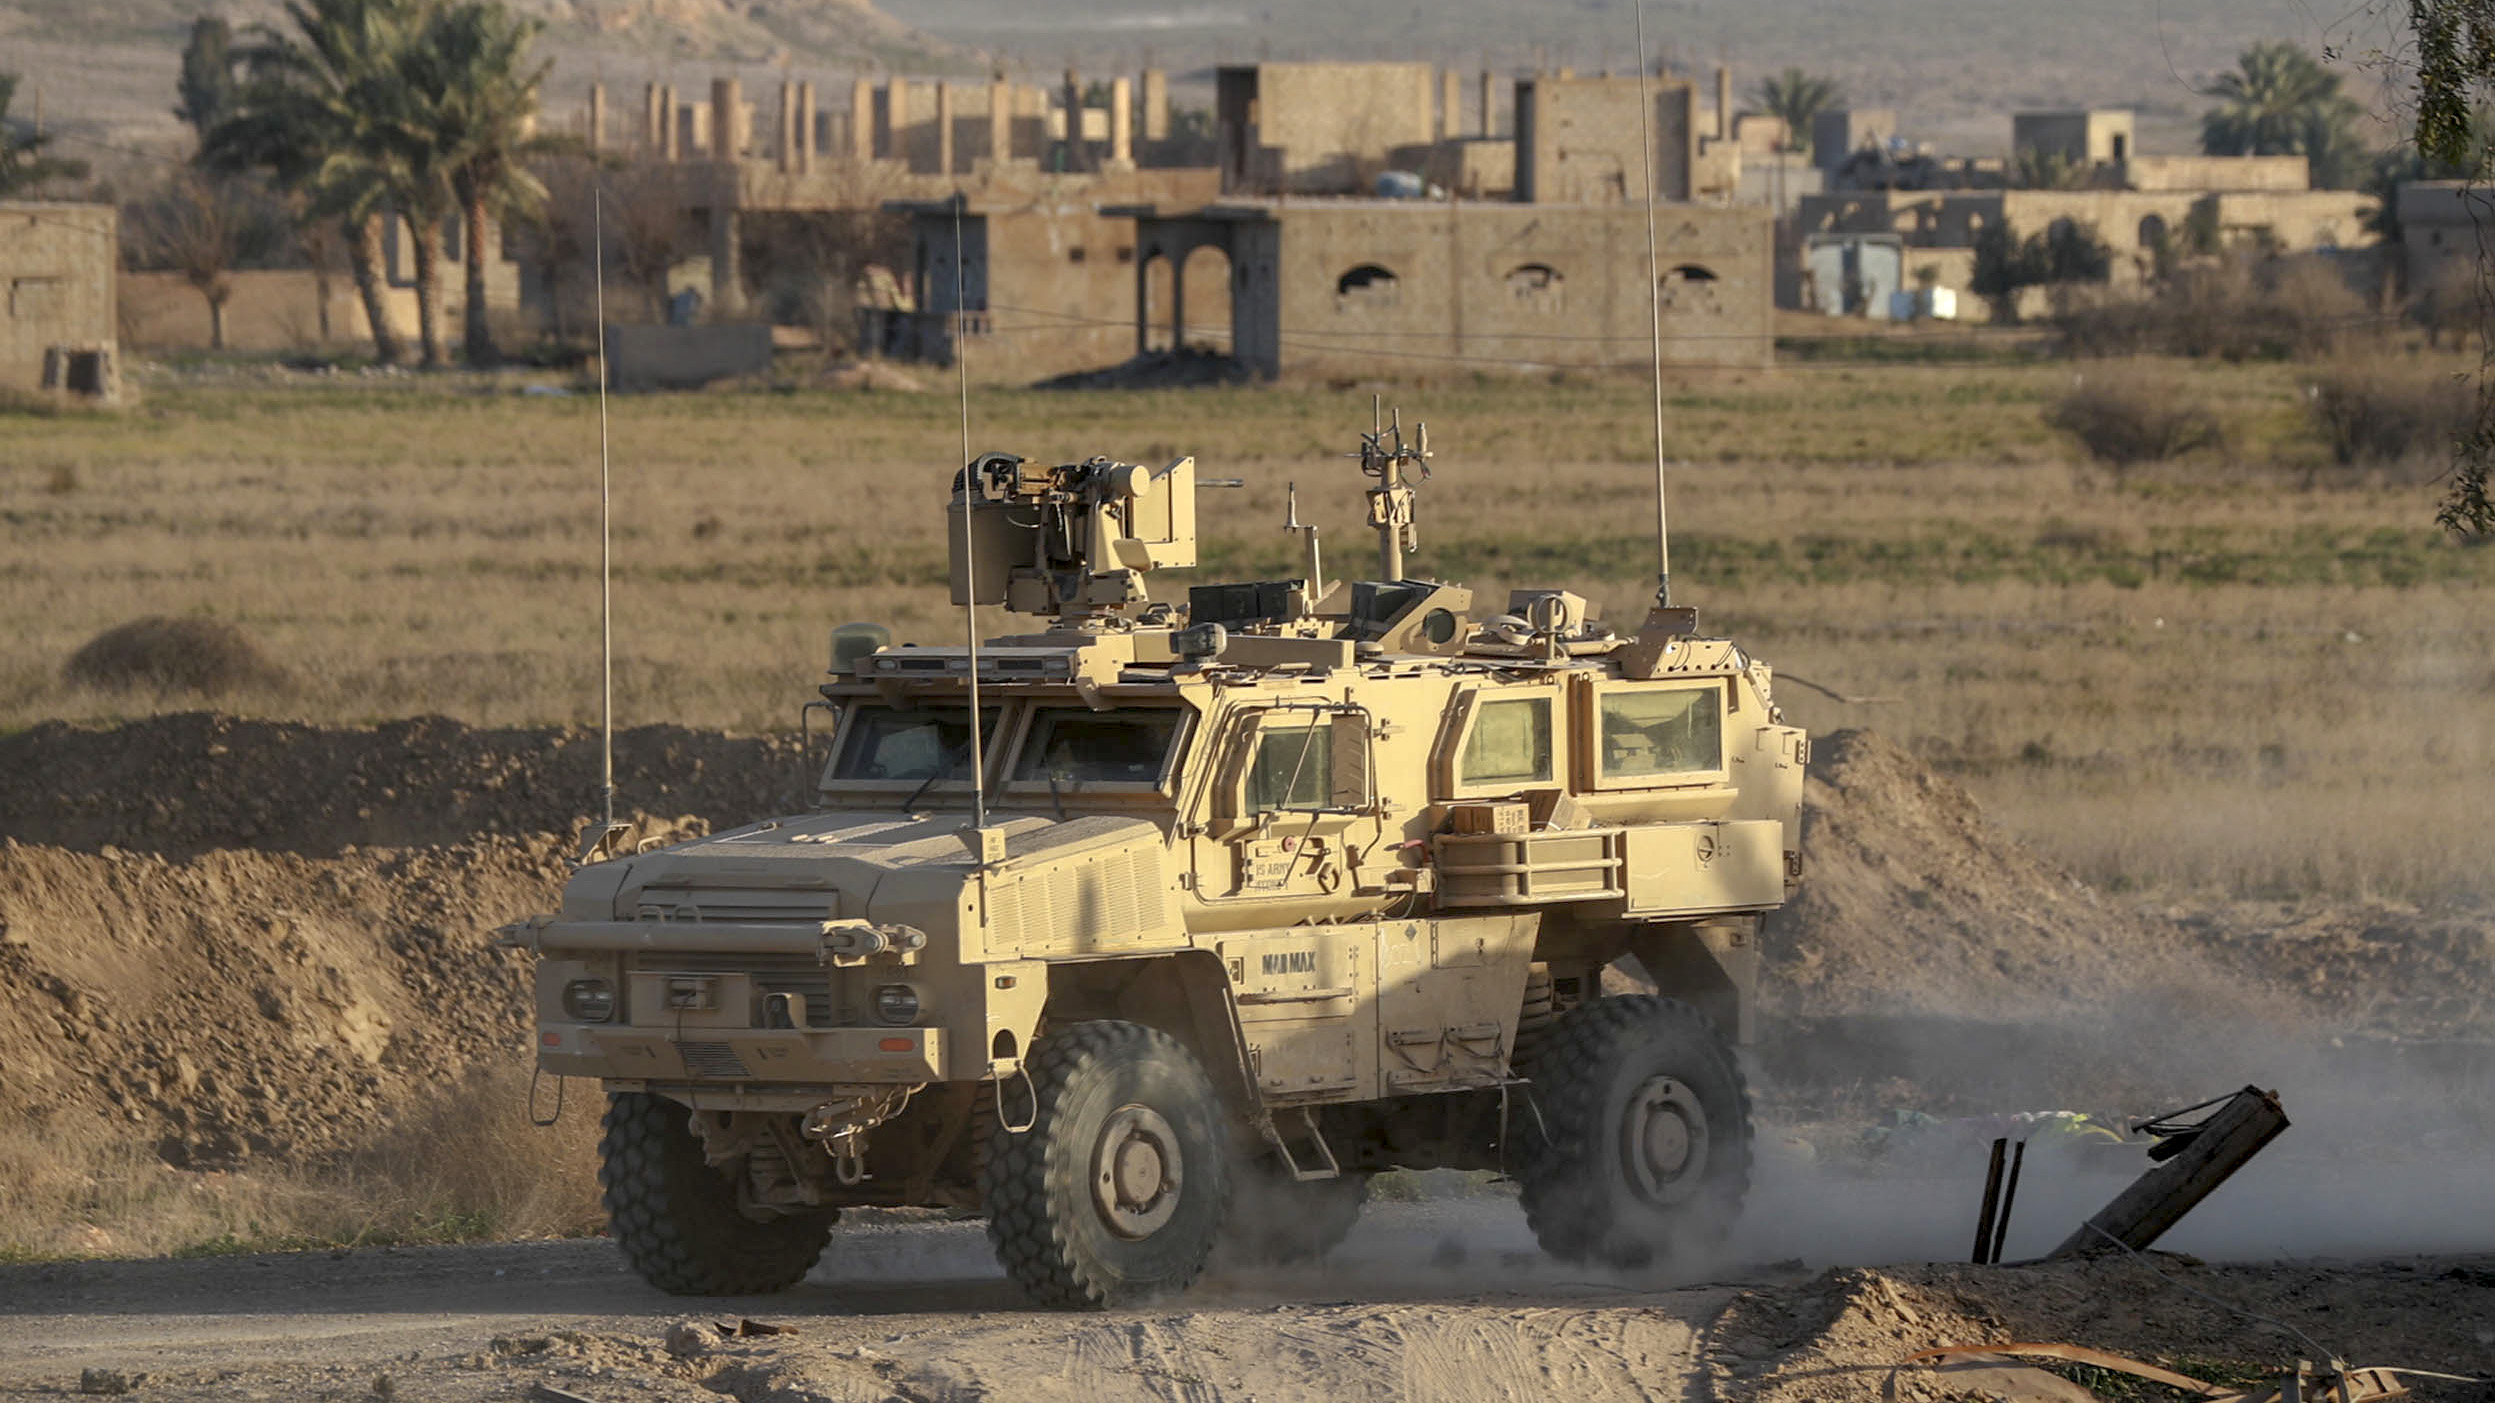 A US military vehicle drives through the Syrian village of Baghuz in the countryside of the eastern Deir Ezzor province on January 26, 2019. - The Syrian Democratic Forces (SDF), with backing from a US-led coalition, are battling to expel the last jihadists of the Islamic State group from hamlets in the eastern province of Deir Ezzor. (DELIL SOULEIMAN/AFP/Getty Images)